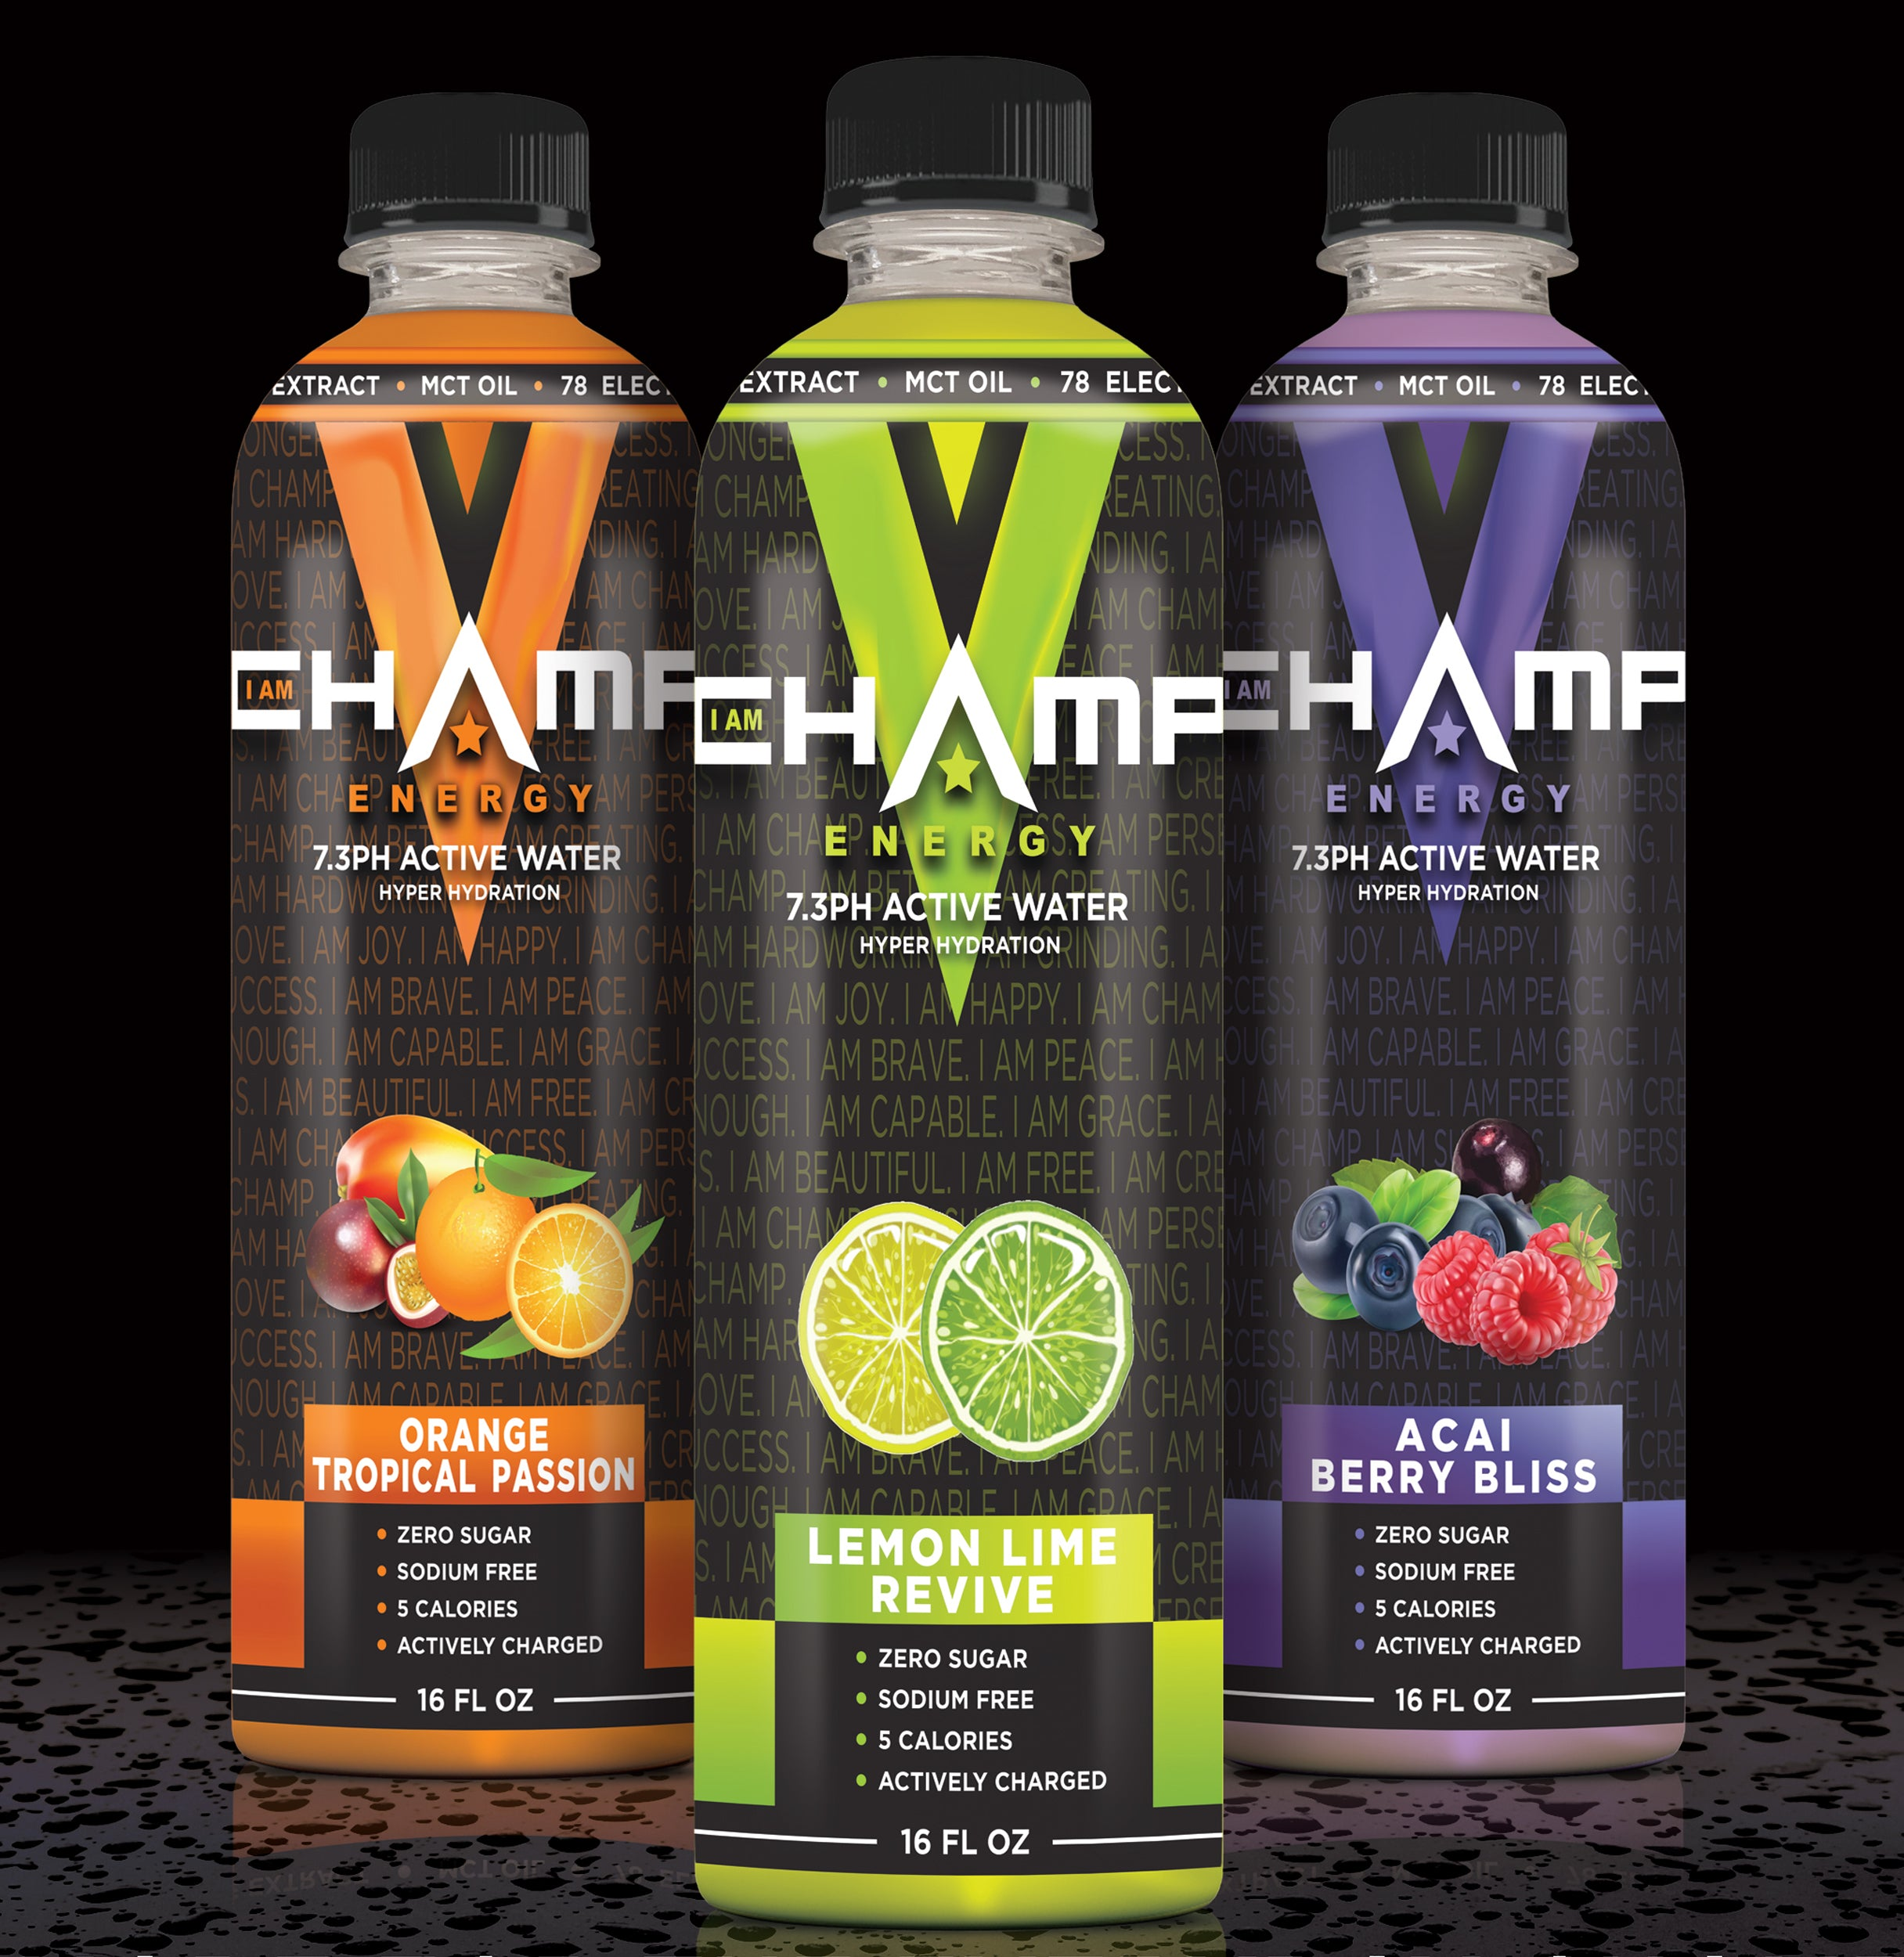 Champ, in Response to Coronavirus Donates 5,000 Cases of Its Functional Beverage